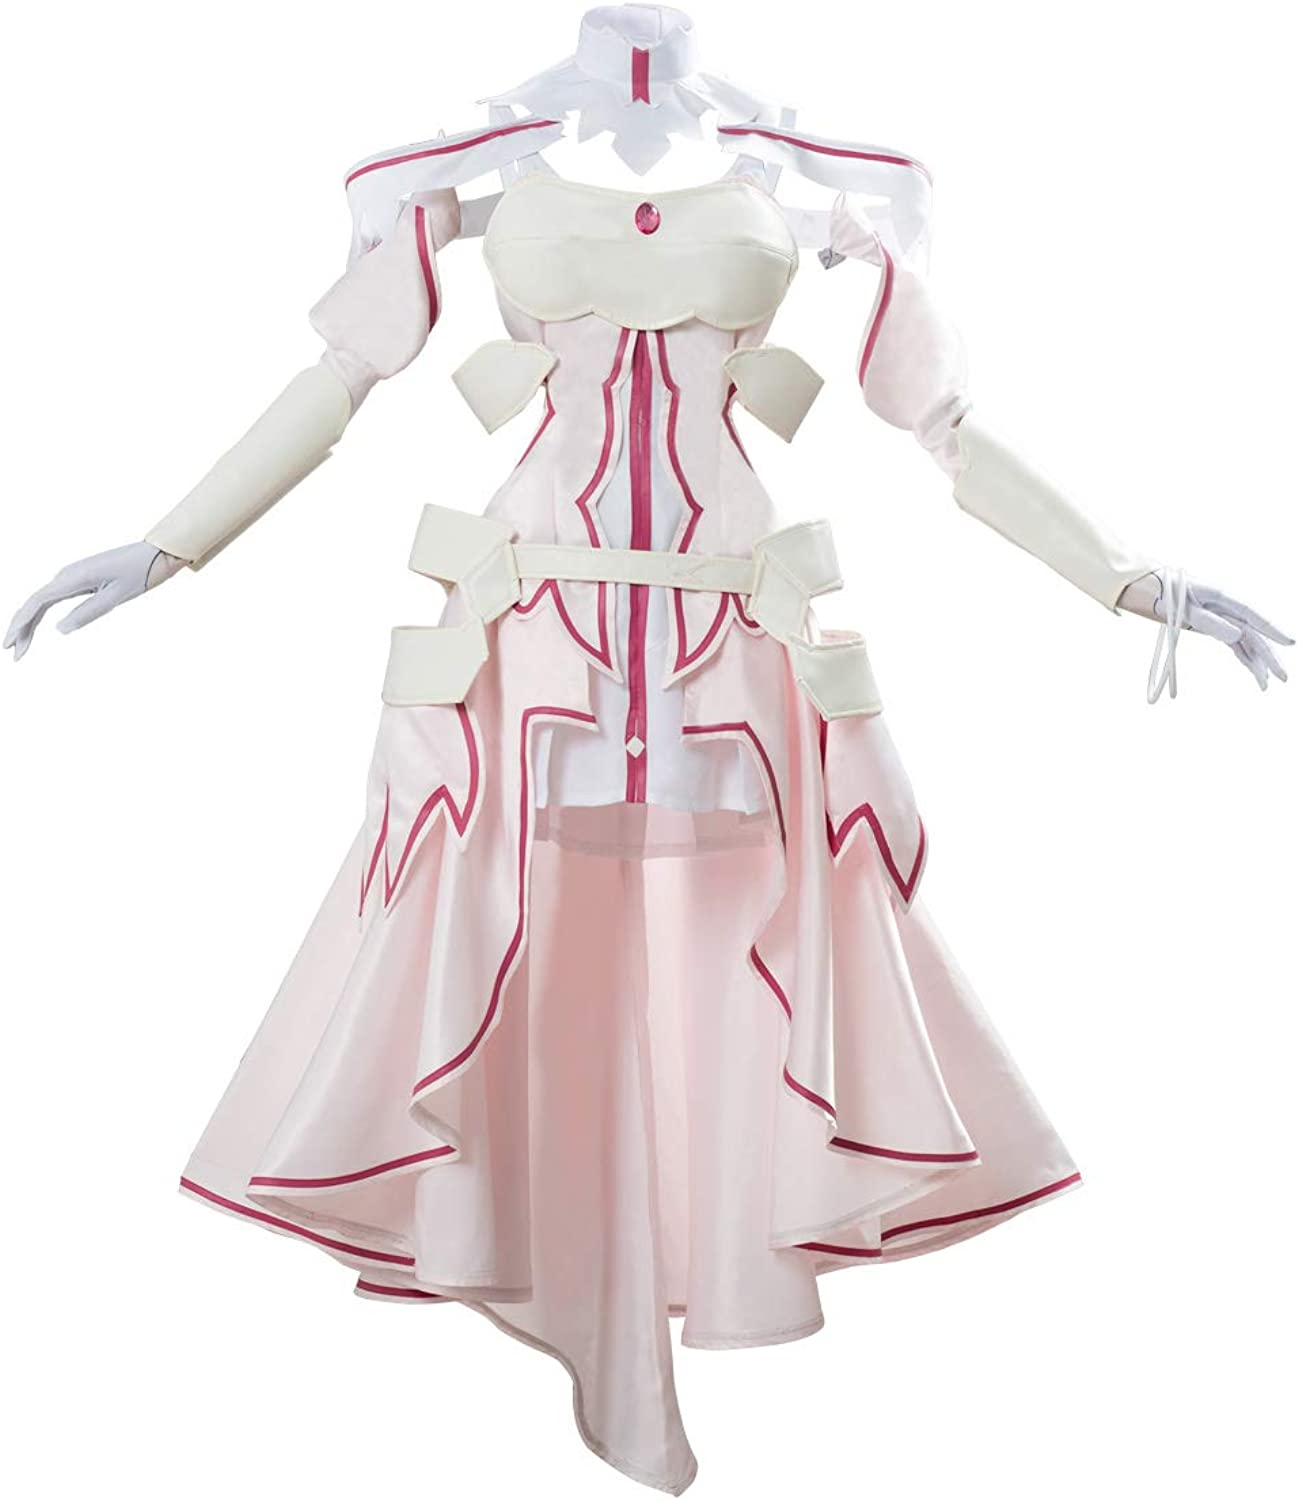 Amazon Com Womens Asuna Yuuki Sao Sword Art Online Cosplay Costume Deluxe Full Sets Dress Halloween Outfit With Accessories Clothing